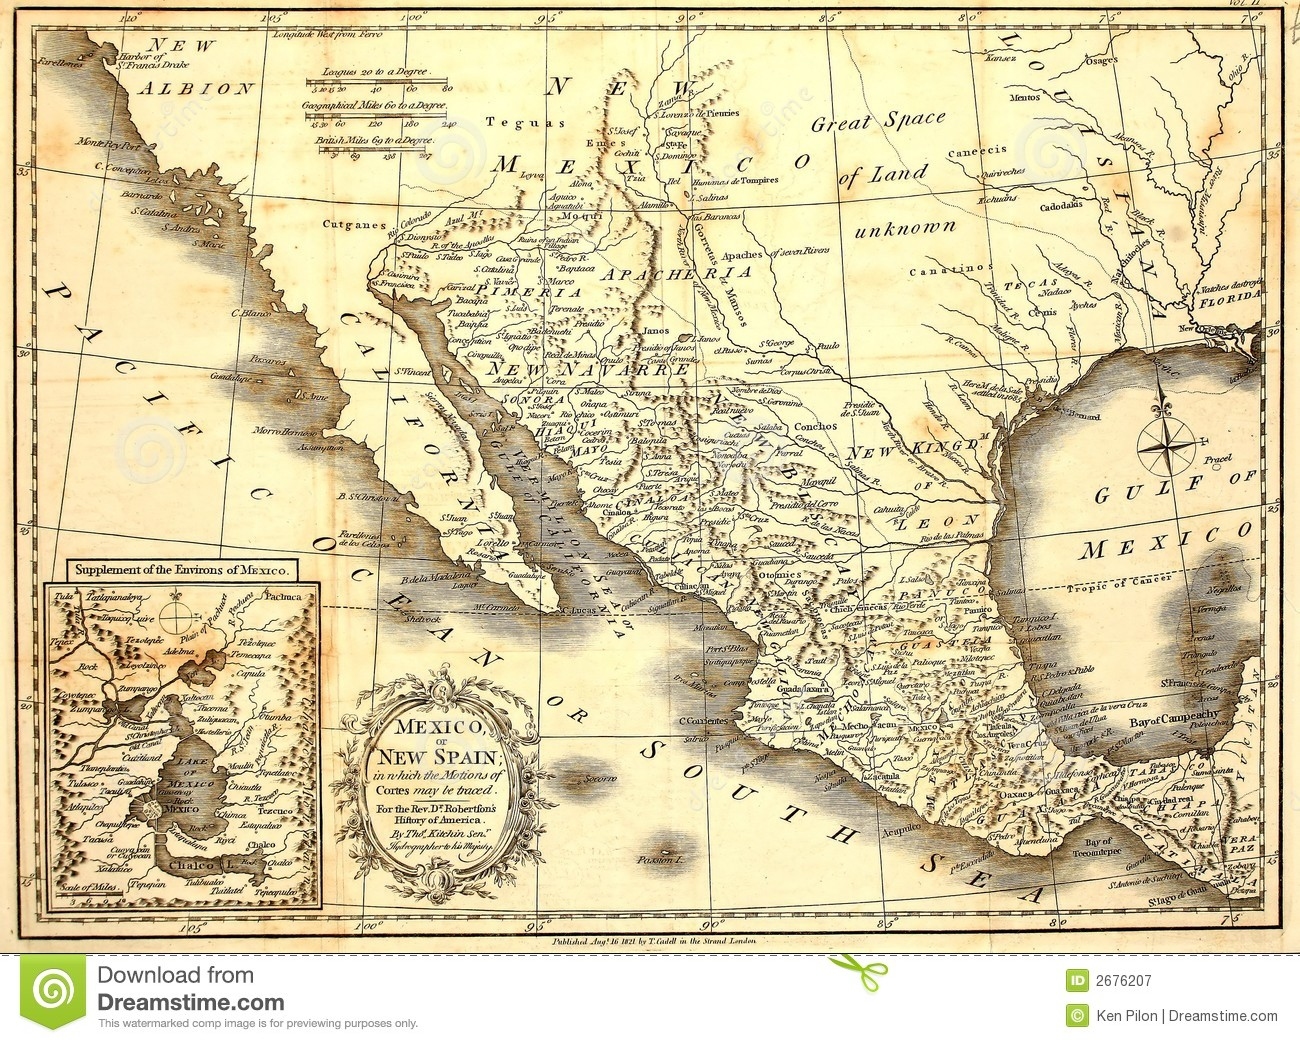 1821 Map of Mexico